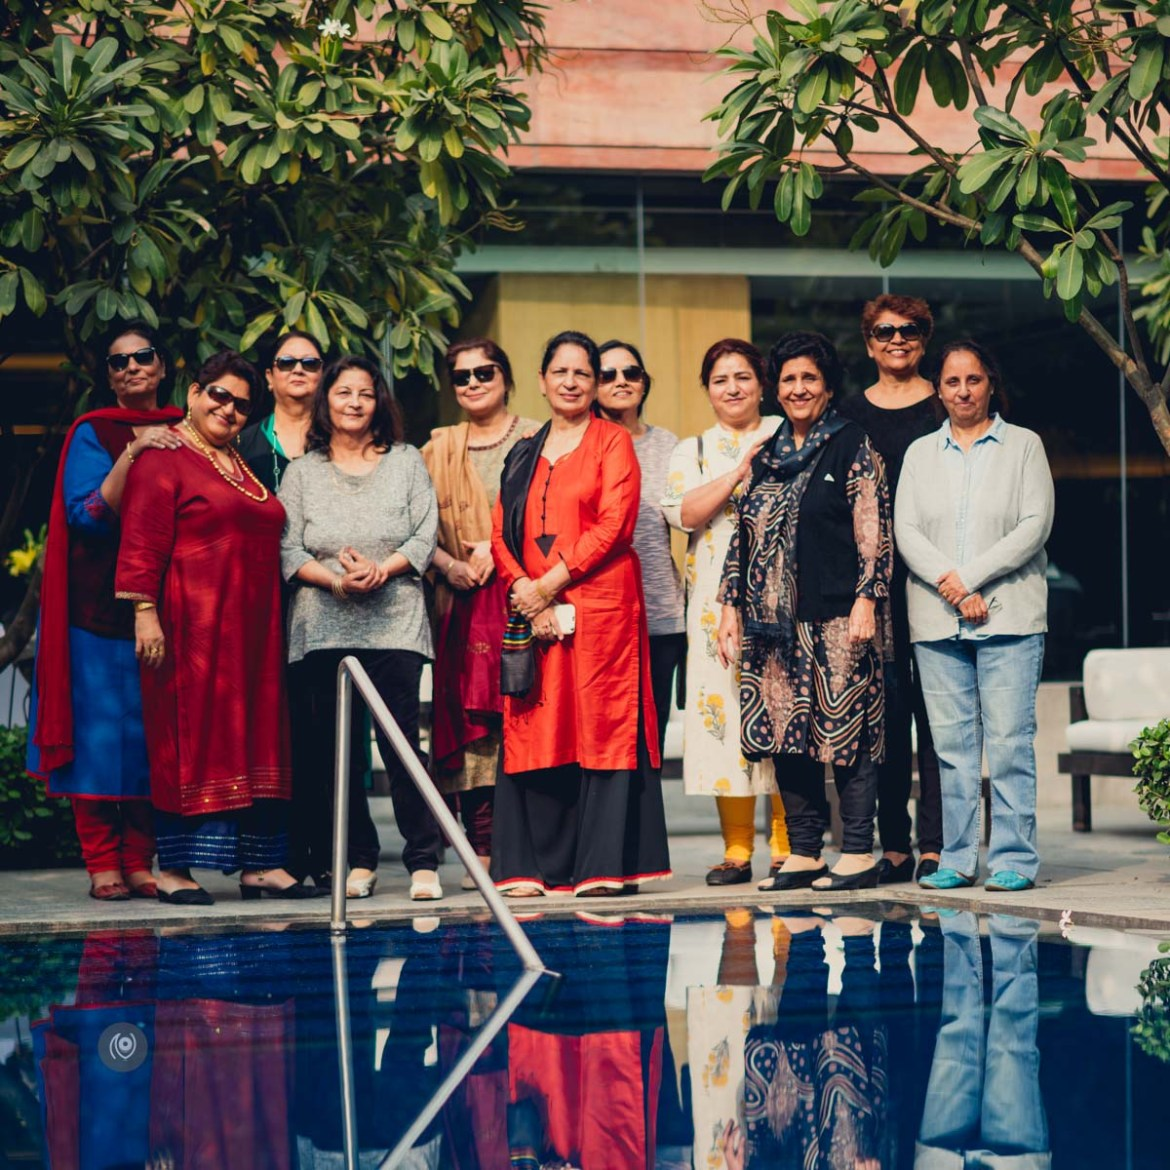 Experience Collector, lifestyle, lifestyle blogger, lifestyle blogger india, lifestyle photographer india, luxury blogger, luxury blogger india, Luxury Brands, luxury photographer, luxury photographer india, naina redhu, naina.co, professional photographer, visual storyteller, Visual Storyteller for Luxury Brands, Influencer, Luxury Influencer, Lifestyle Influencer, Photography Influencer, Brand Storyteller, Visual Storyteller, EyesForDining, Westin Gurgaon, Kitty Party, Grand Dames, 60+, Senior Citizens, Poolside, Lunch, Wellness, Spa, Super Foods, Healthy, Dining, Westin